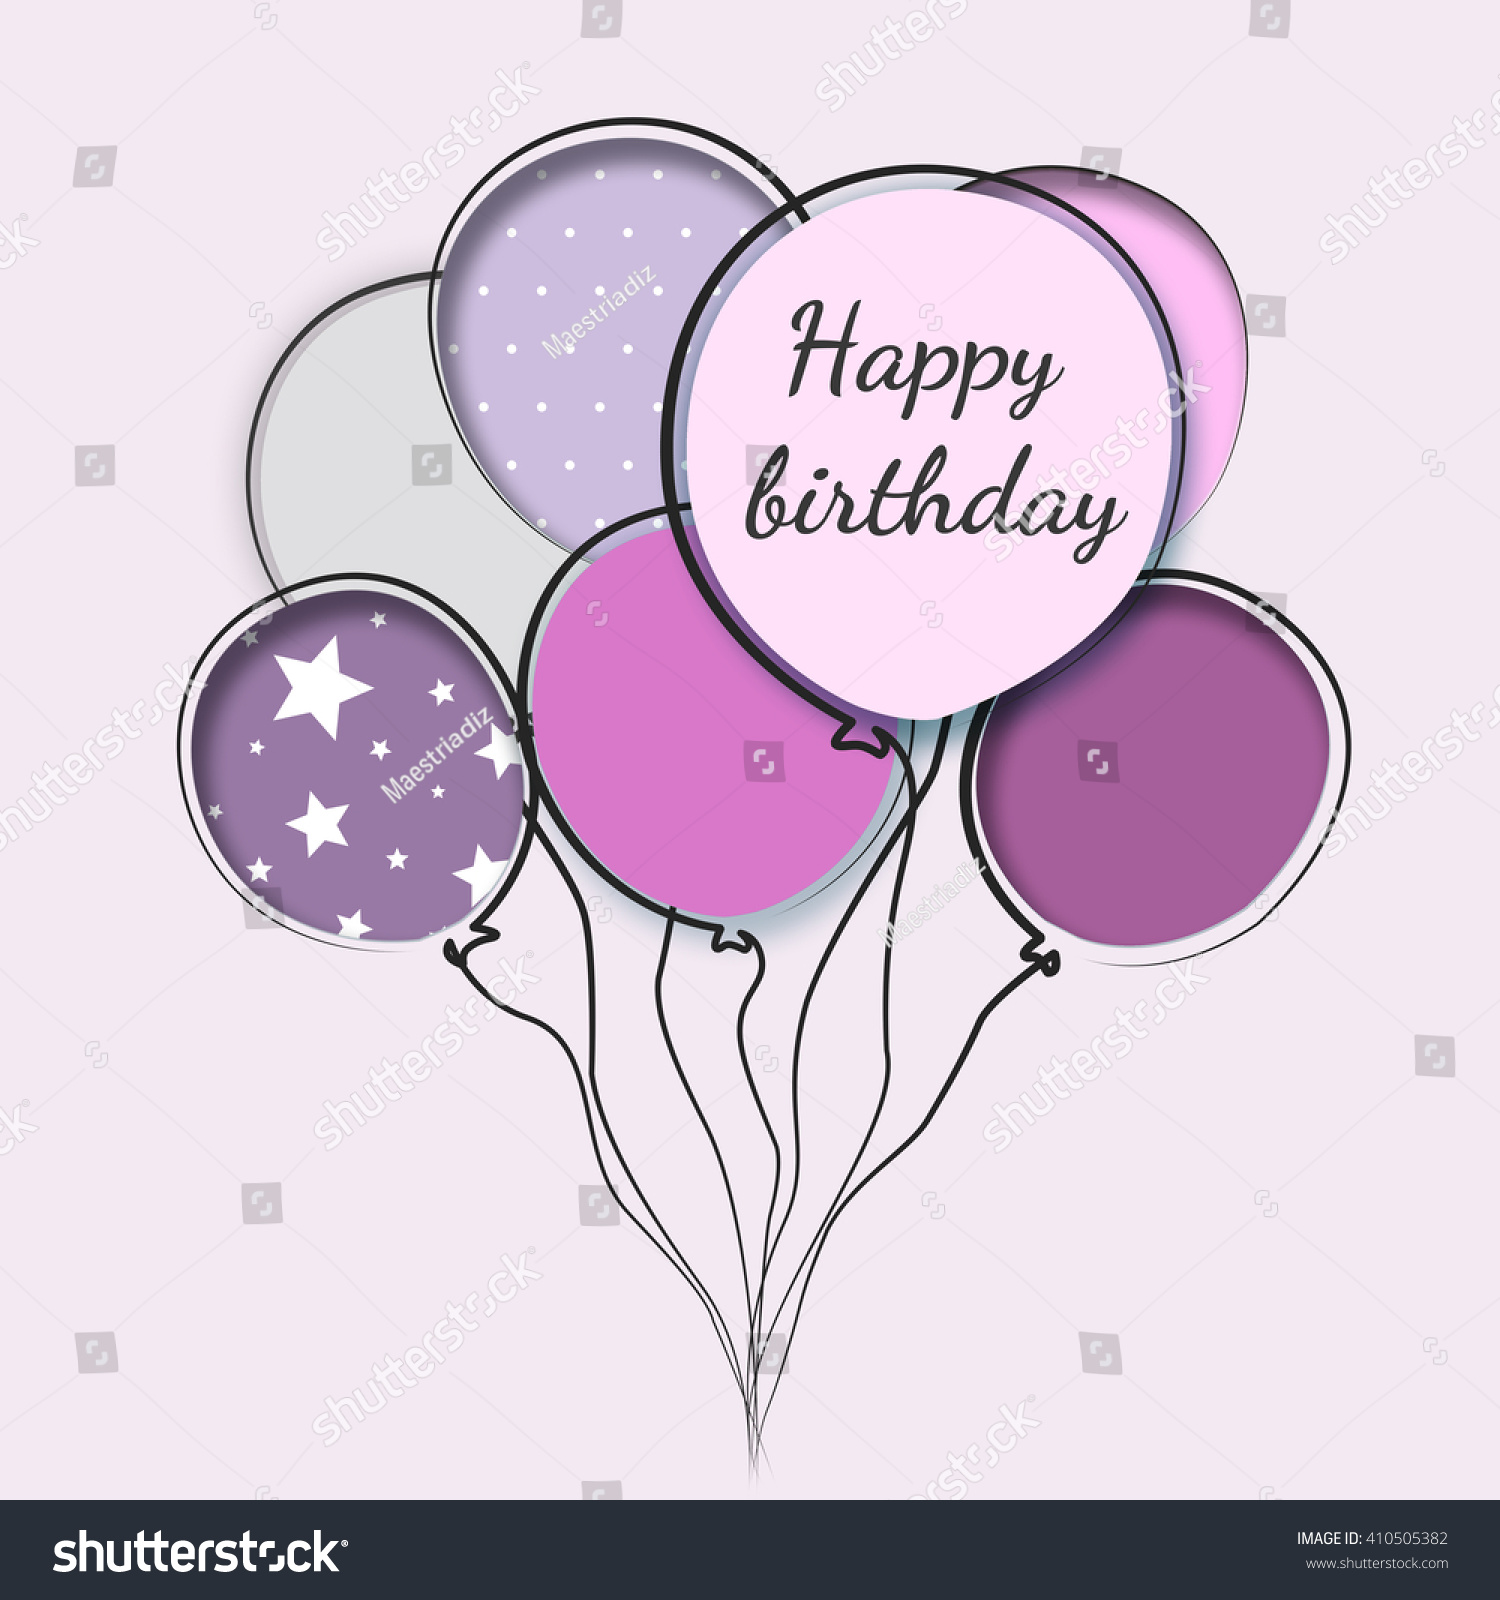 Greeting card balloons birthday woman stock illustration 410505382 greeting card with balloons birthday of woman bookmarktalkfo Images